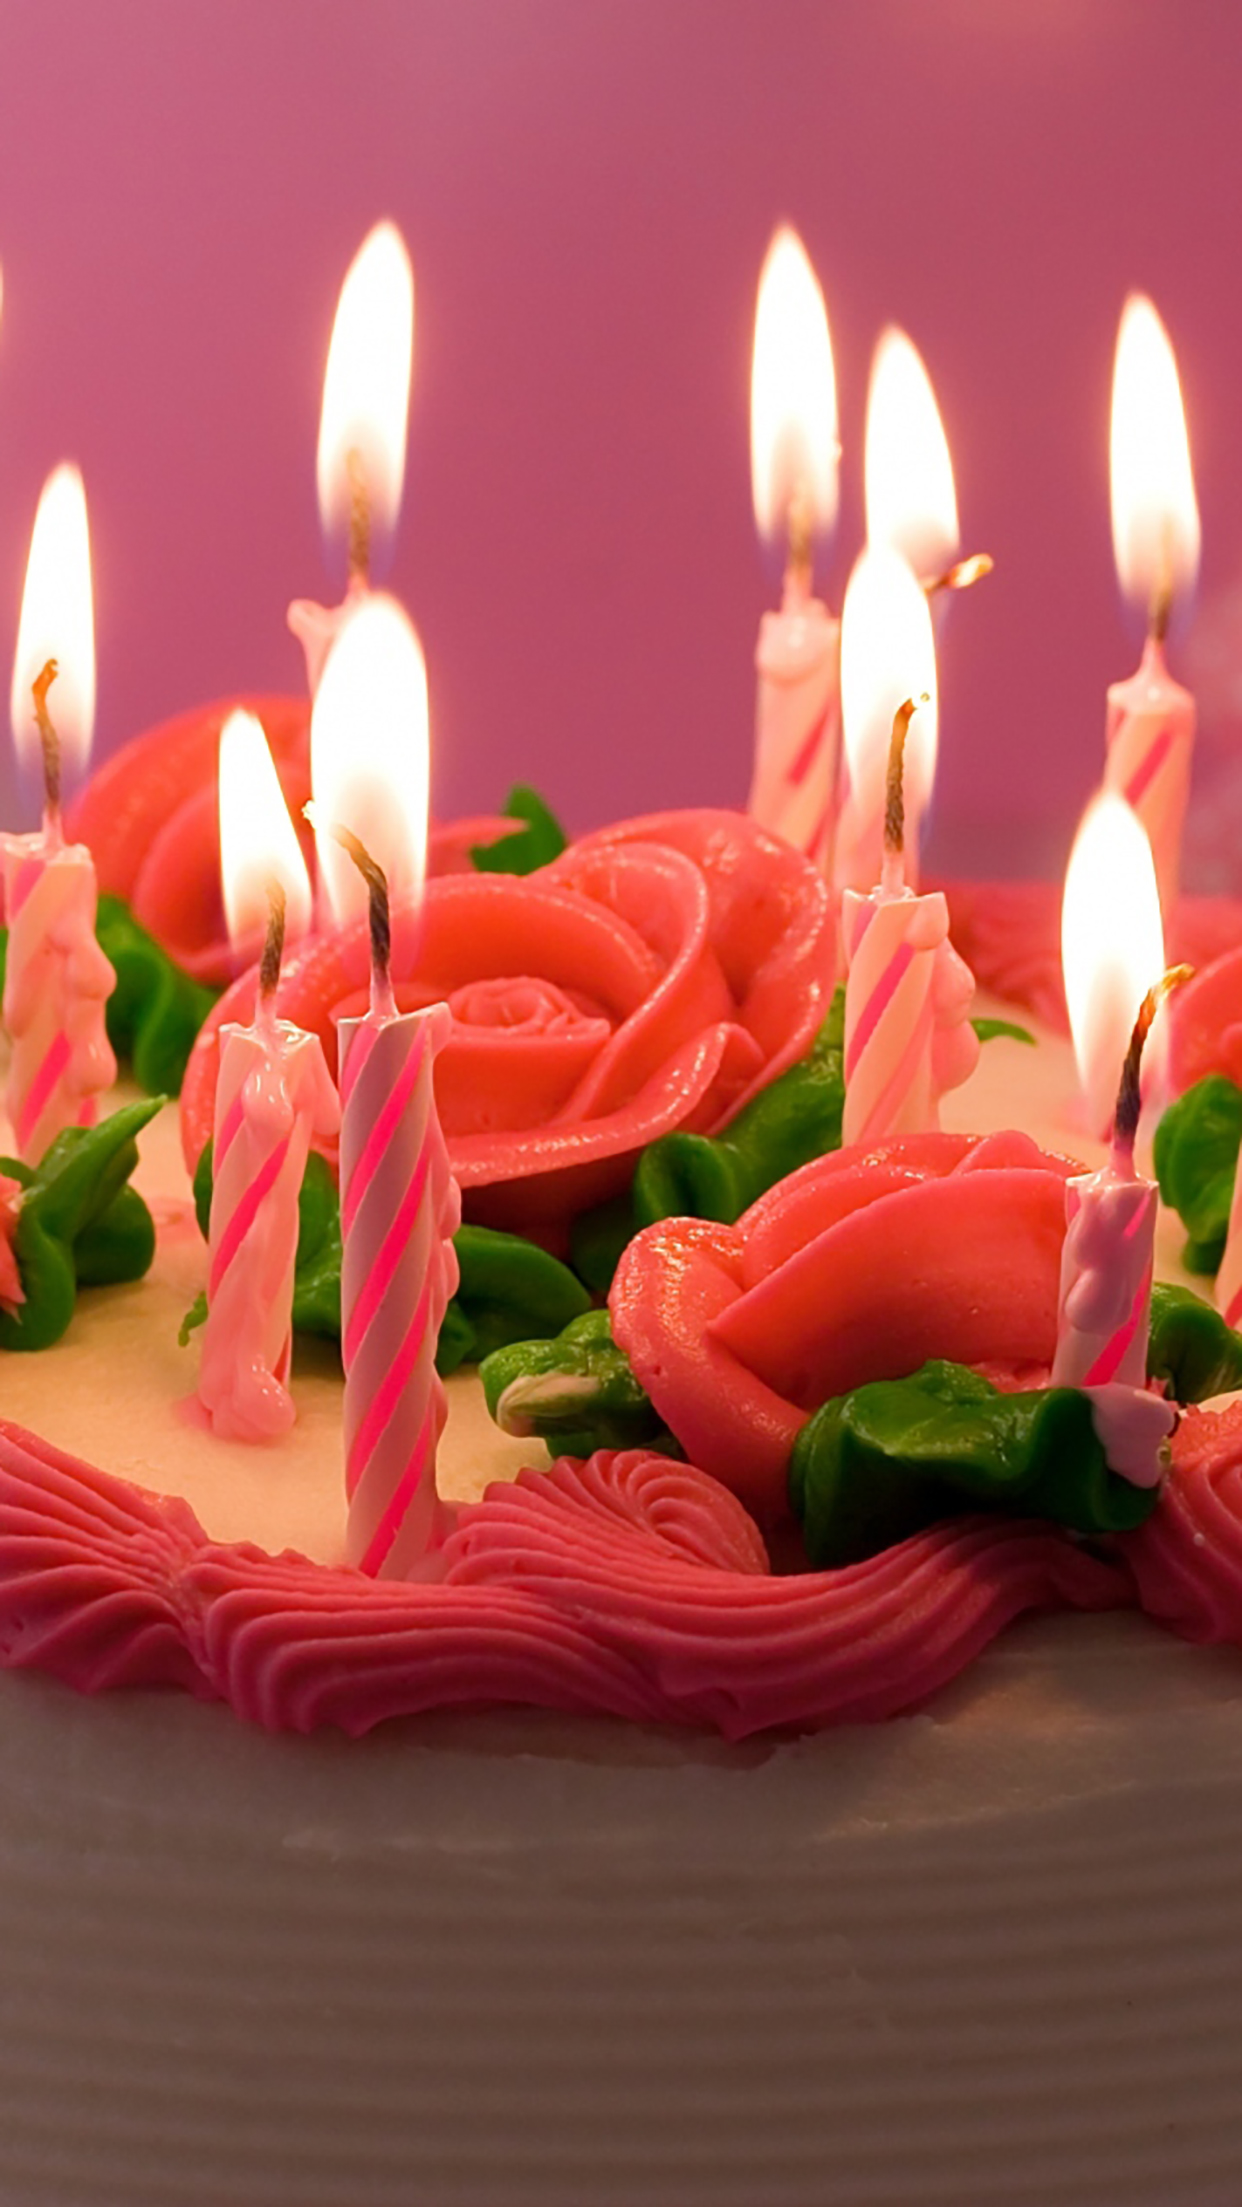 Anniversary Candles On Cake 3Wallpapers iPhone Parallax Anniversary : Candles On Cake